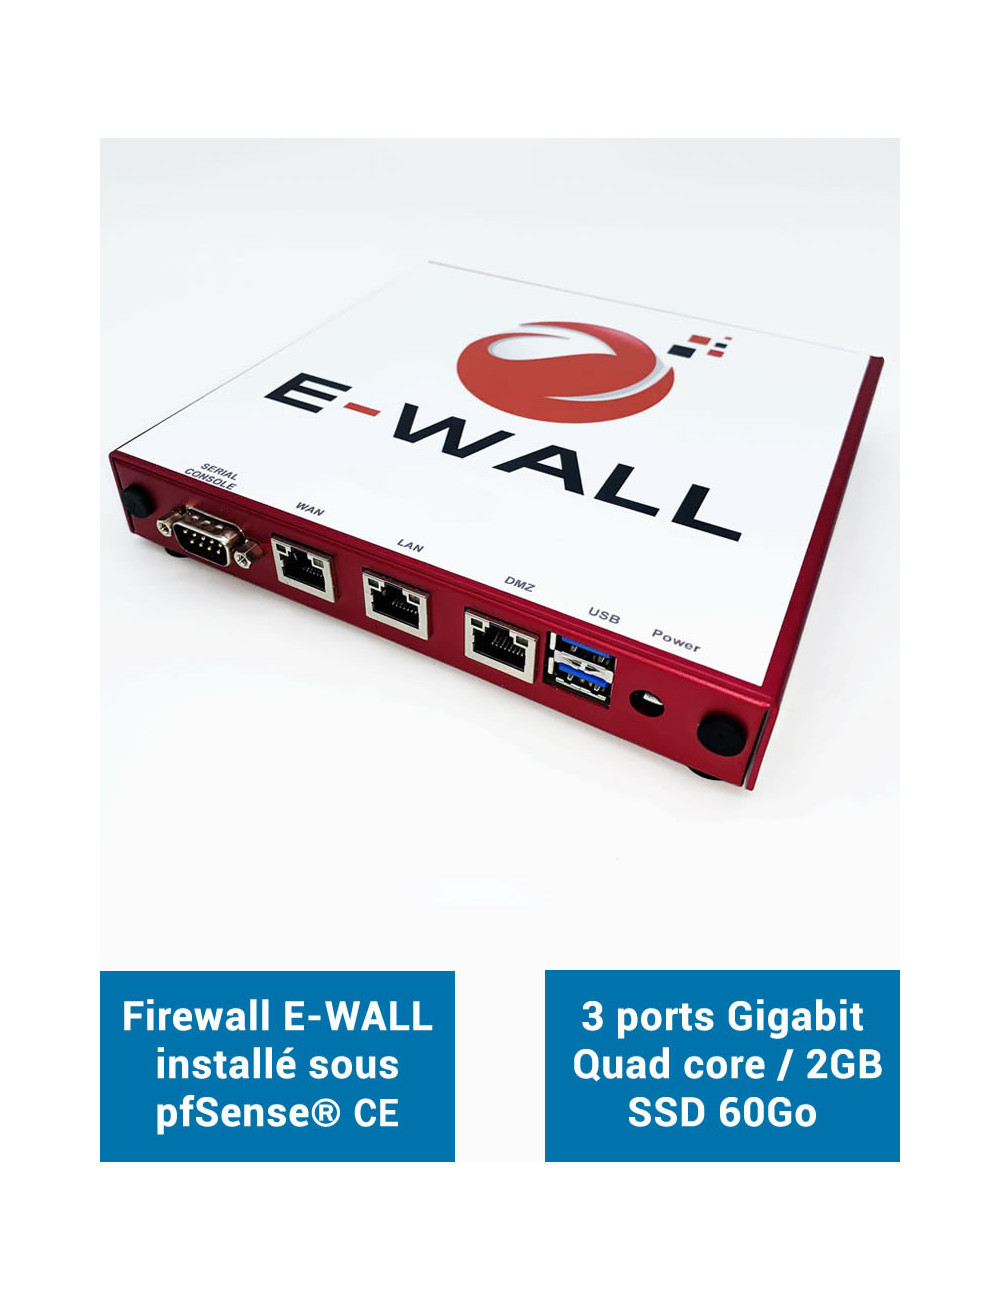 Firewall E-WALL AP232 under pfSense® CE 3 ports 2GB SSD 60GB